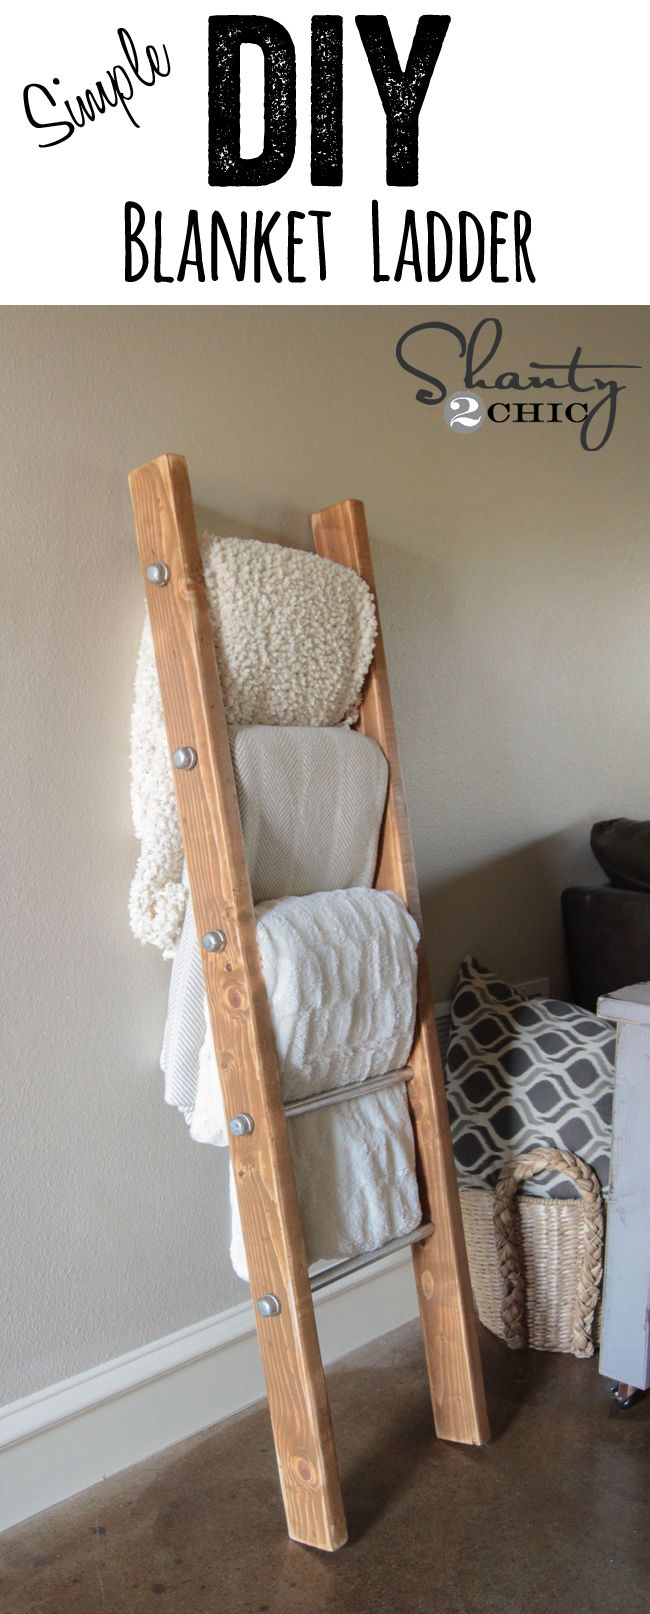 DIY Wood and Metal Pipe Blanket Ladder… Seriously SO simple and so cute! www.shanty-2-chic.com